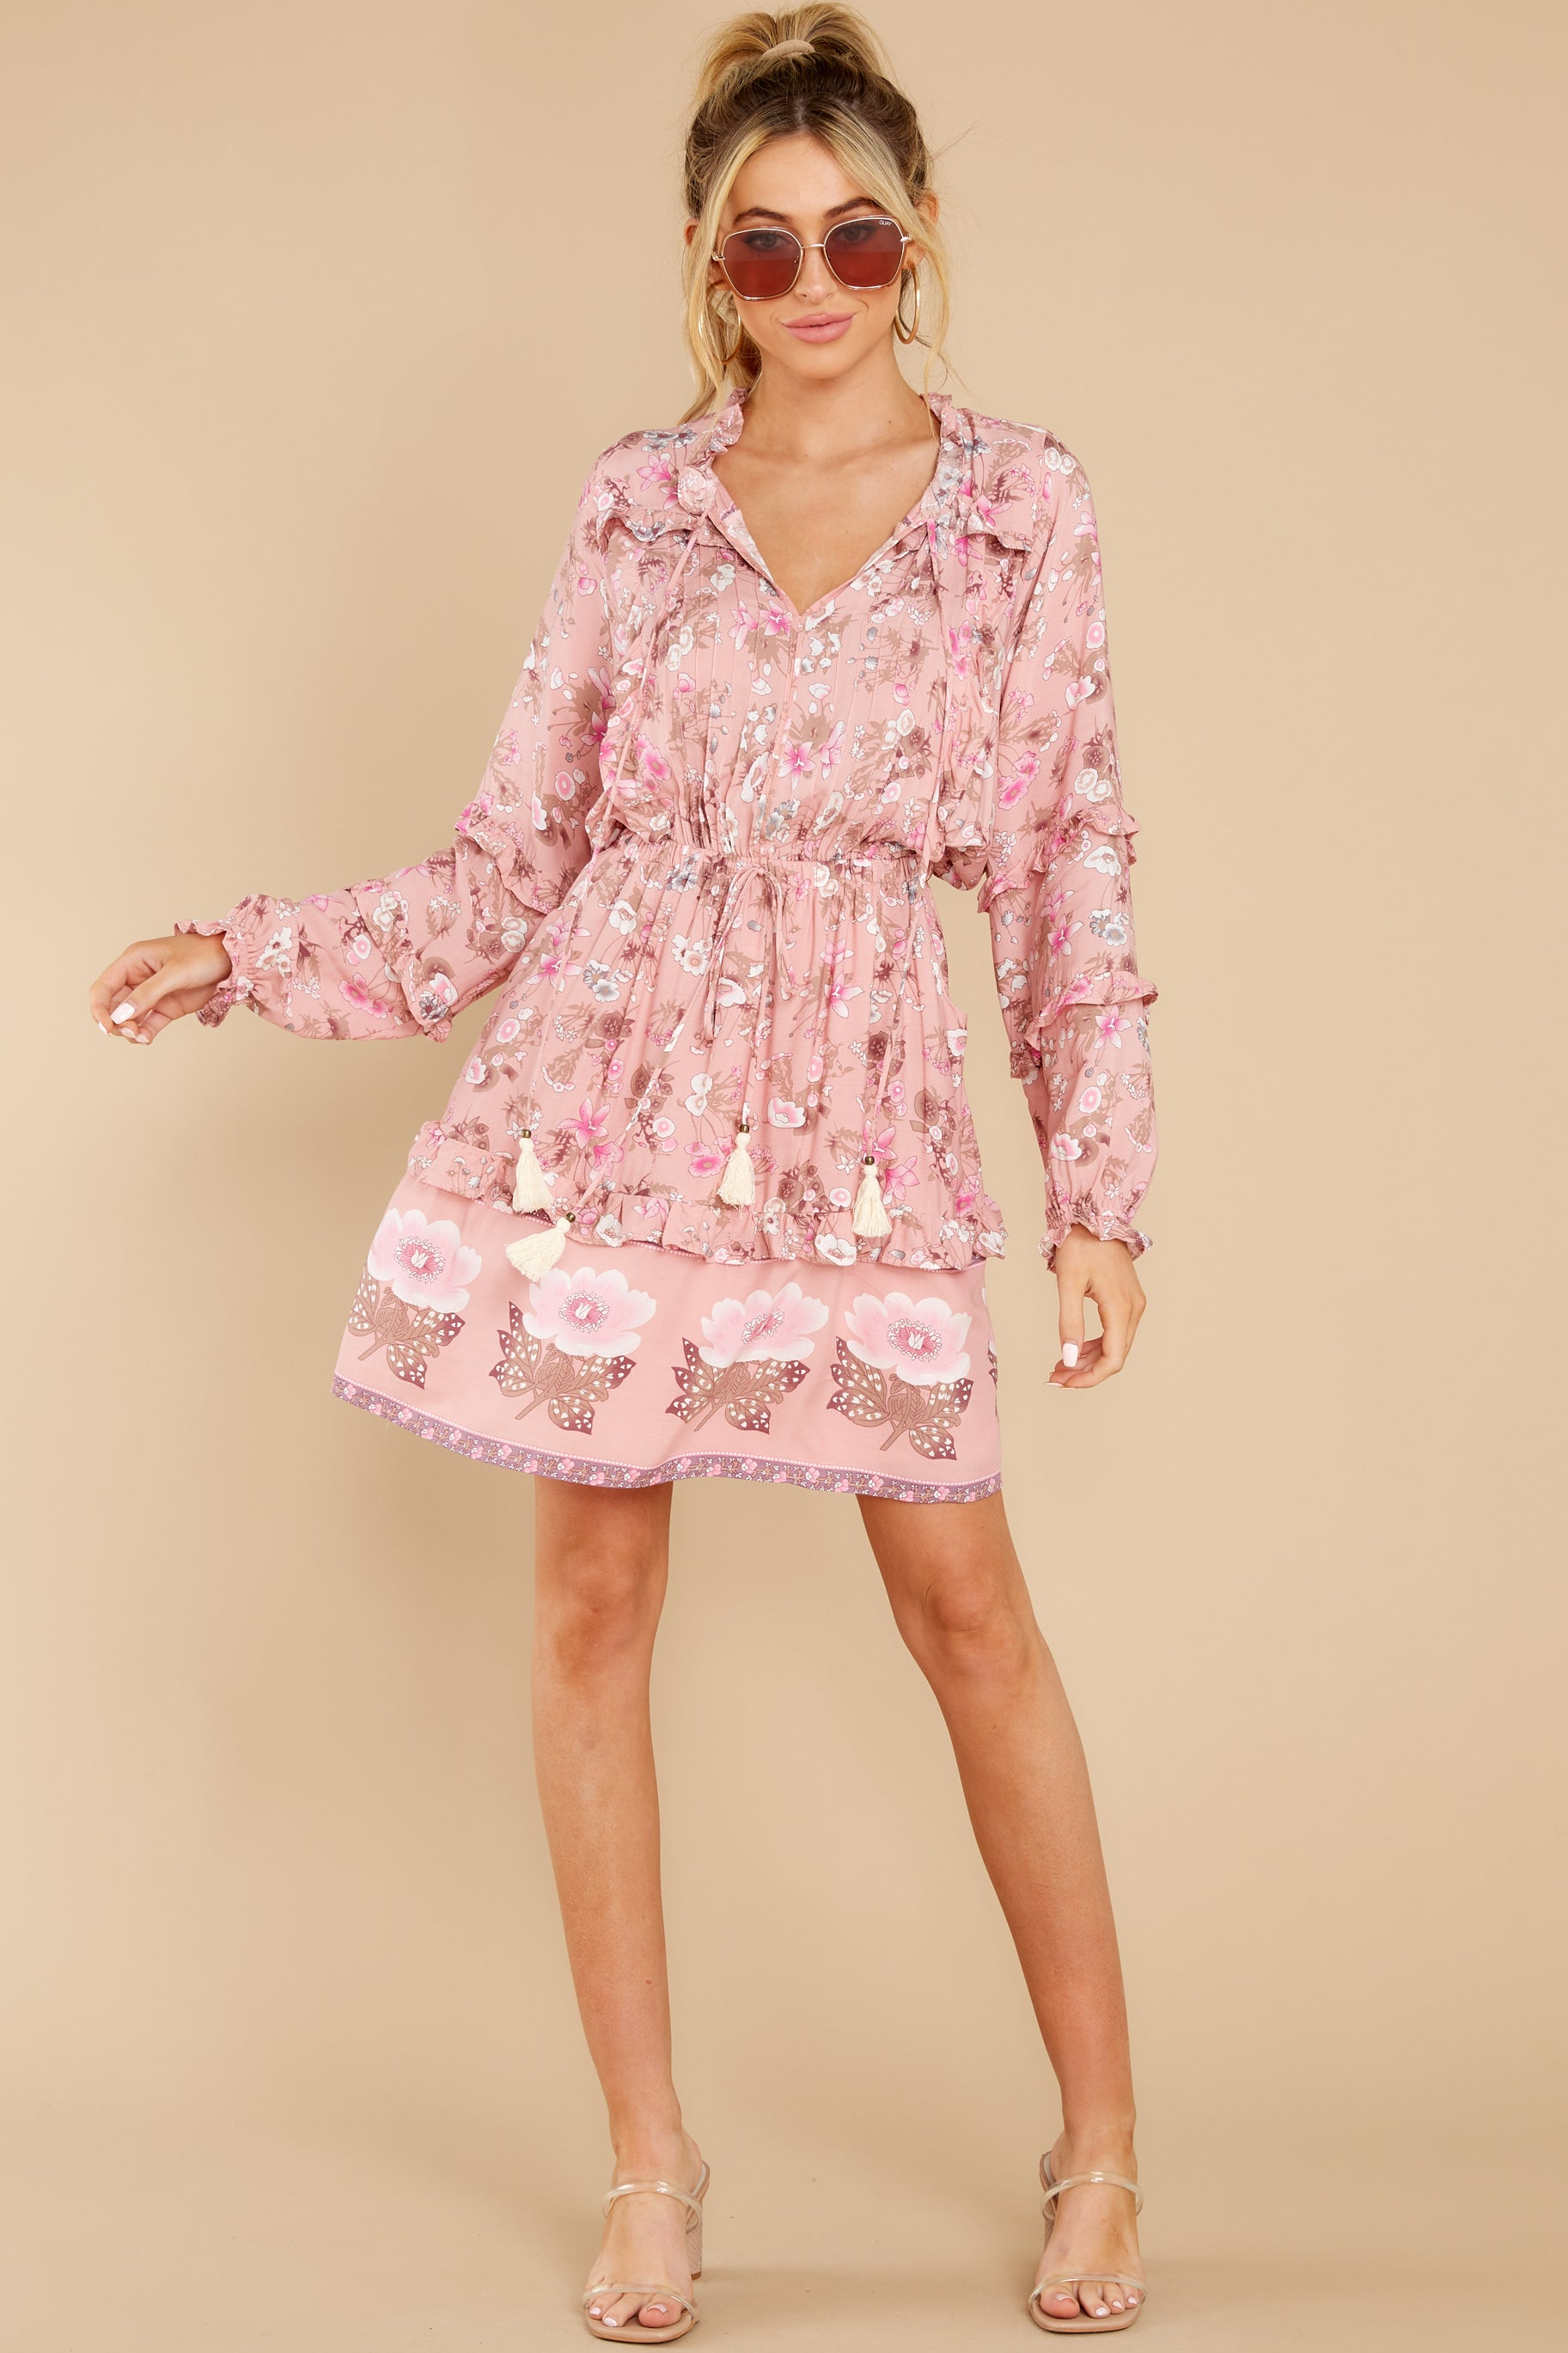 2 Ventura Nights Mauve Pink Floral Print Dress at reddress.com